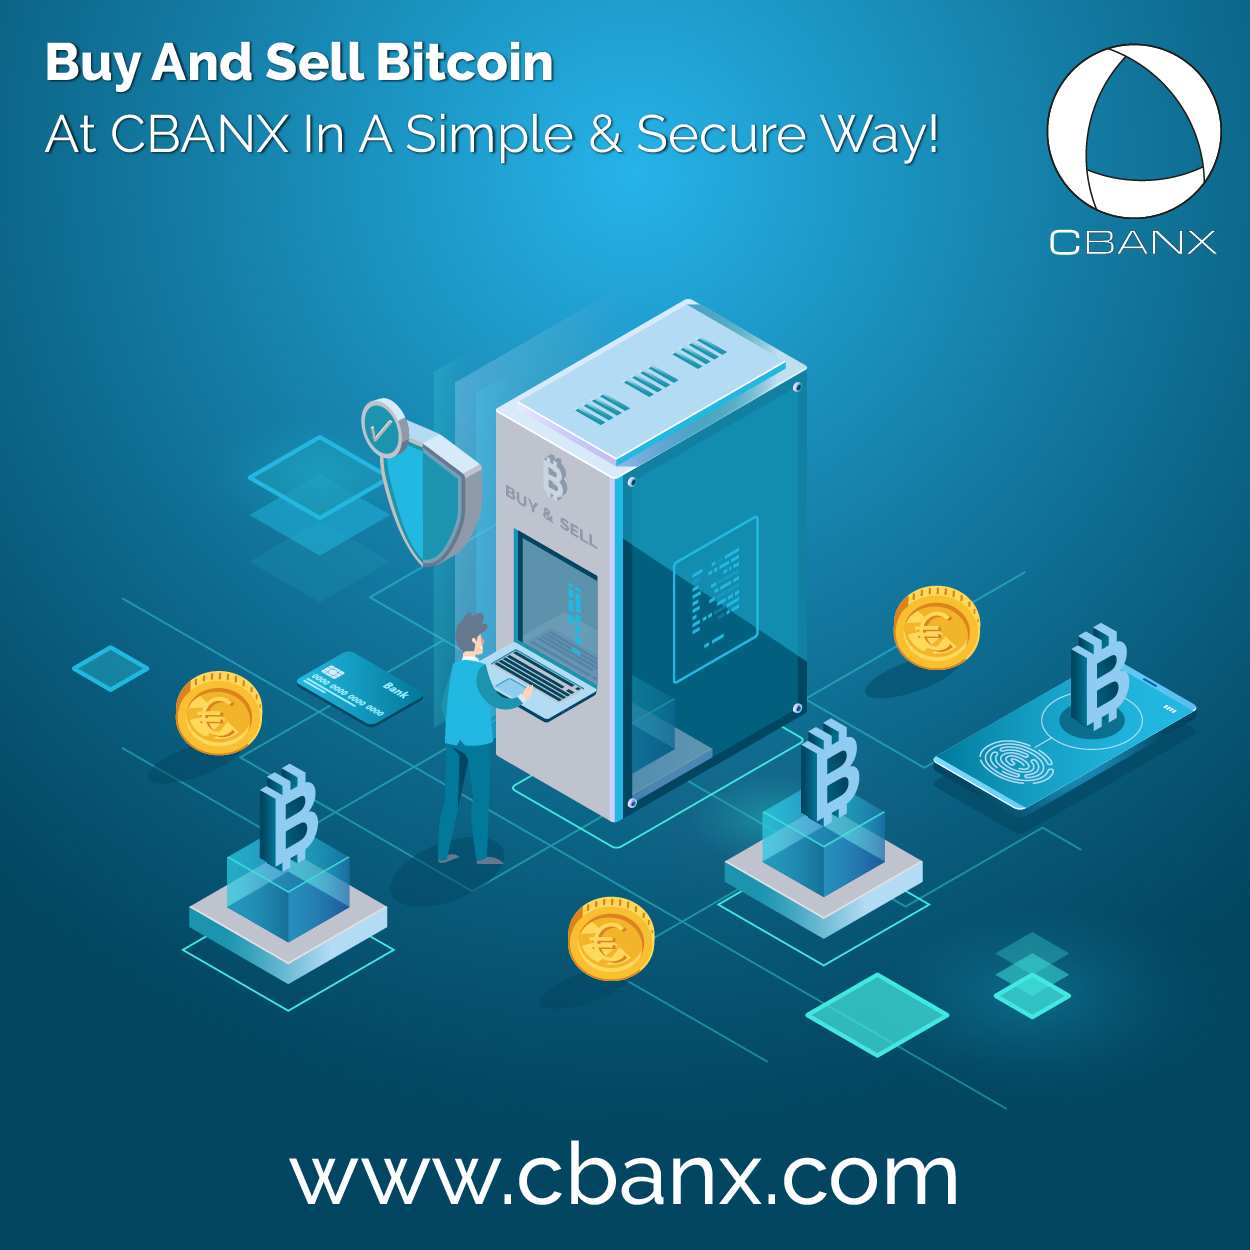 Buy And Sell Bitcoin At CBANX In A Simple And Secure Way!